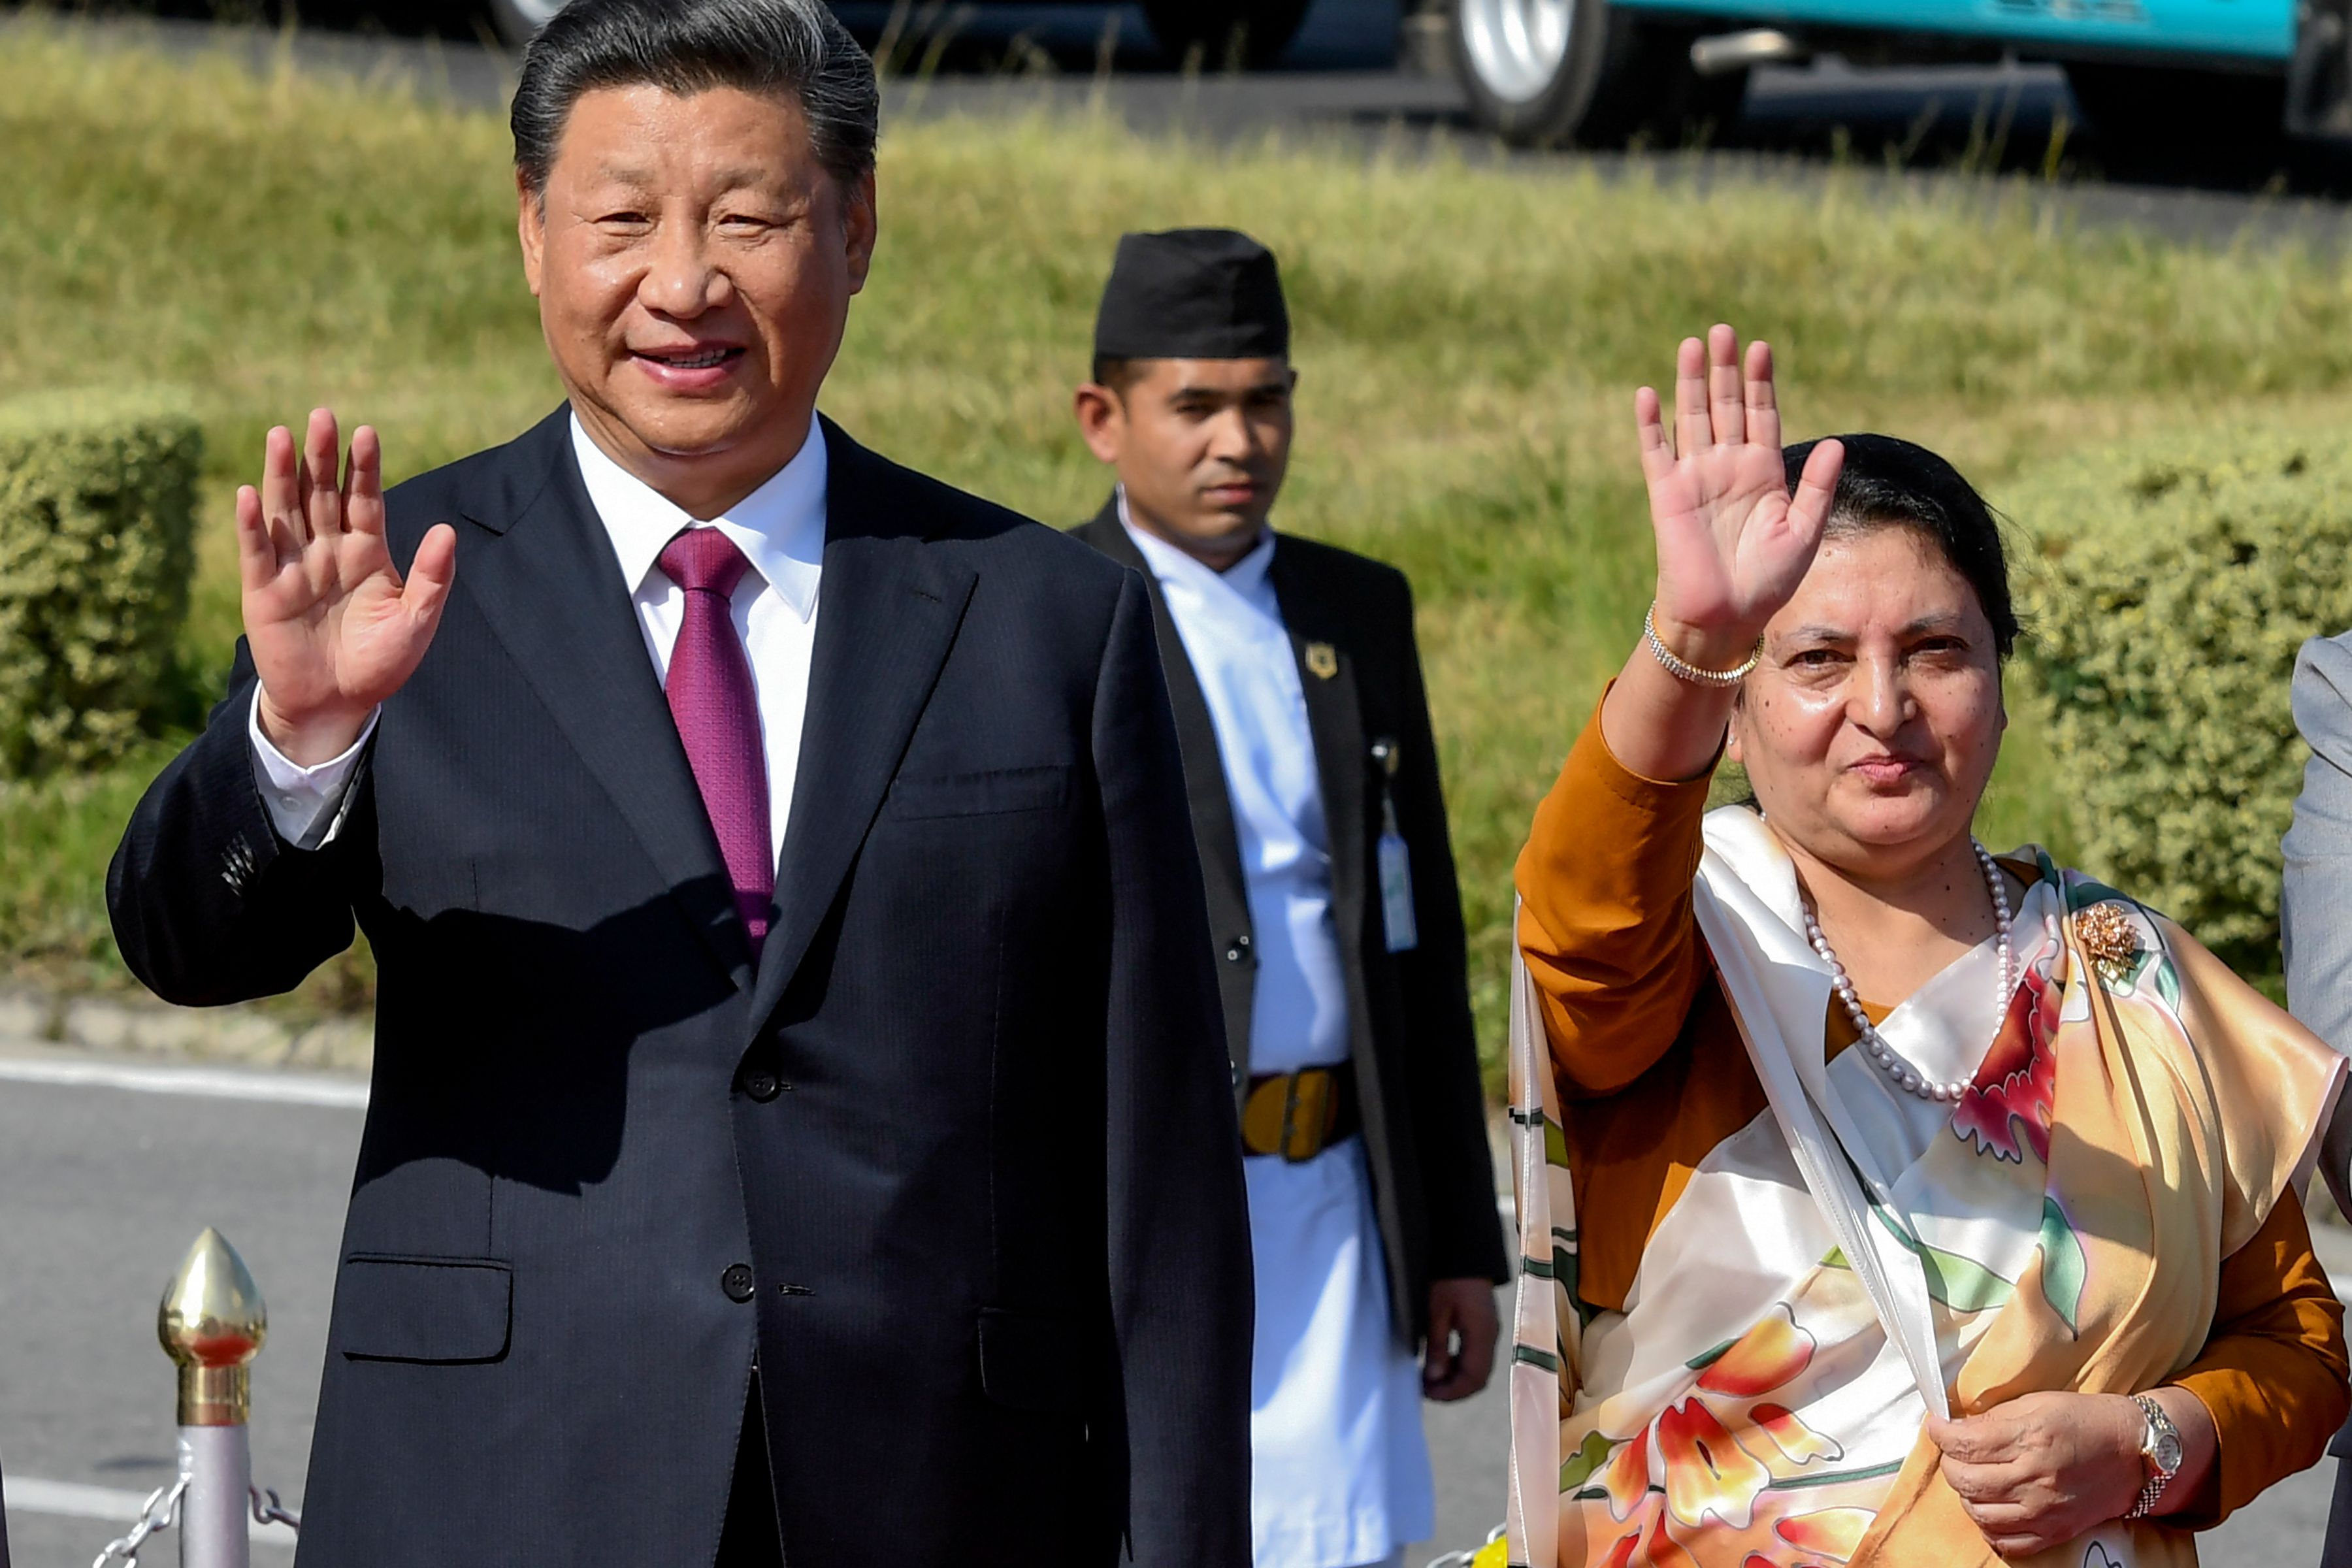 Nepal's President Bidhya Devi Bhandari (R) and China's President Xi Jinping (L) wave as the latter bids farewell, wrapping up his two-day visit to Nepal, in Kathmandu on October 13, 2019. (Photo by Prakash MATHEMA / POOL / AFP via Getty Images)